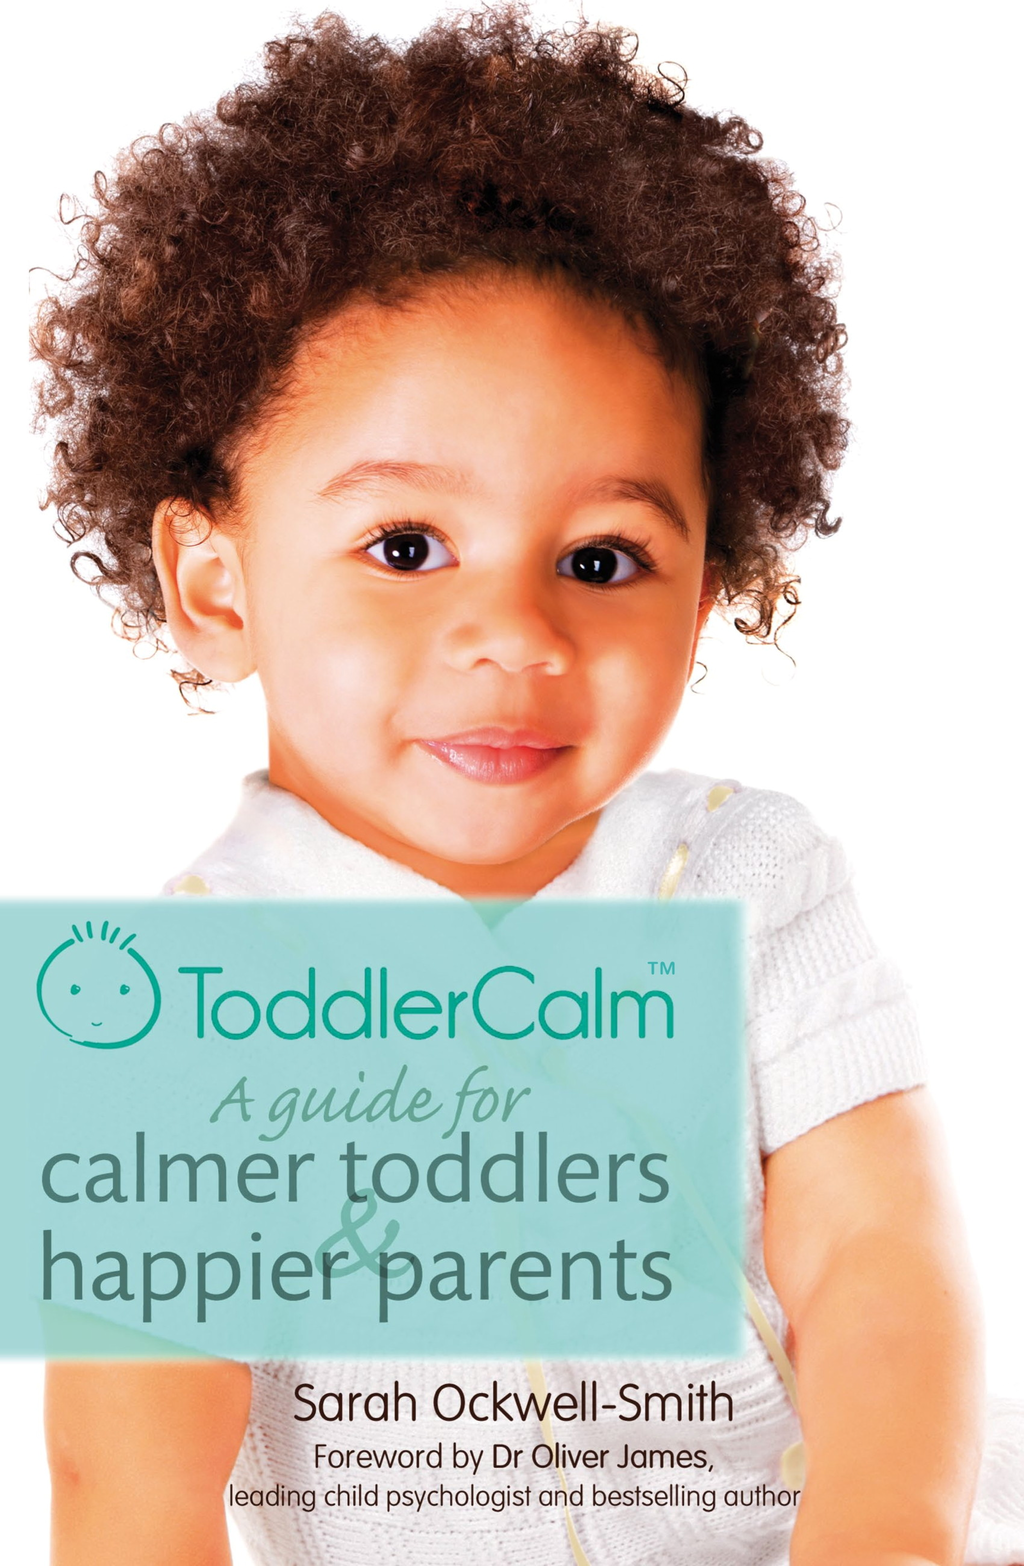 ToddlerCalm A guide for calmer toddlers and happier parents